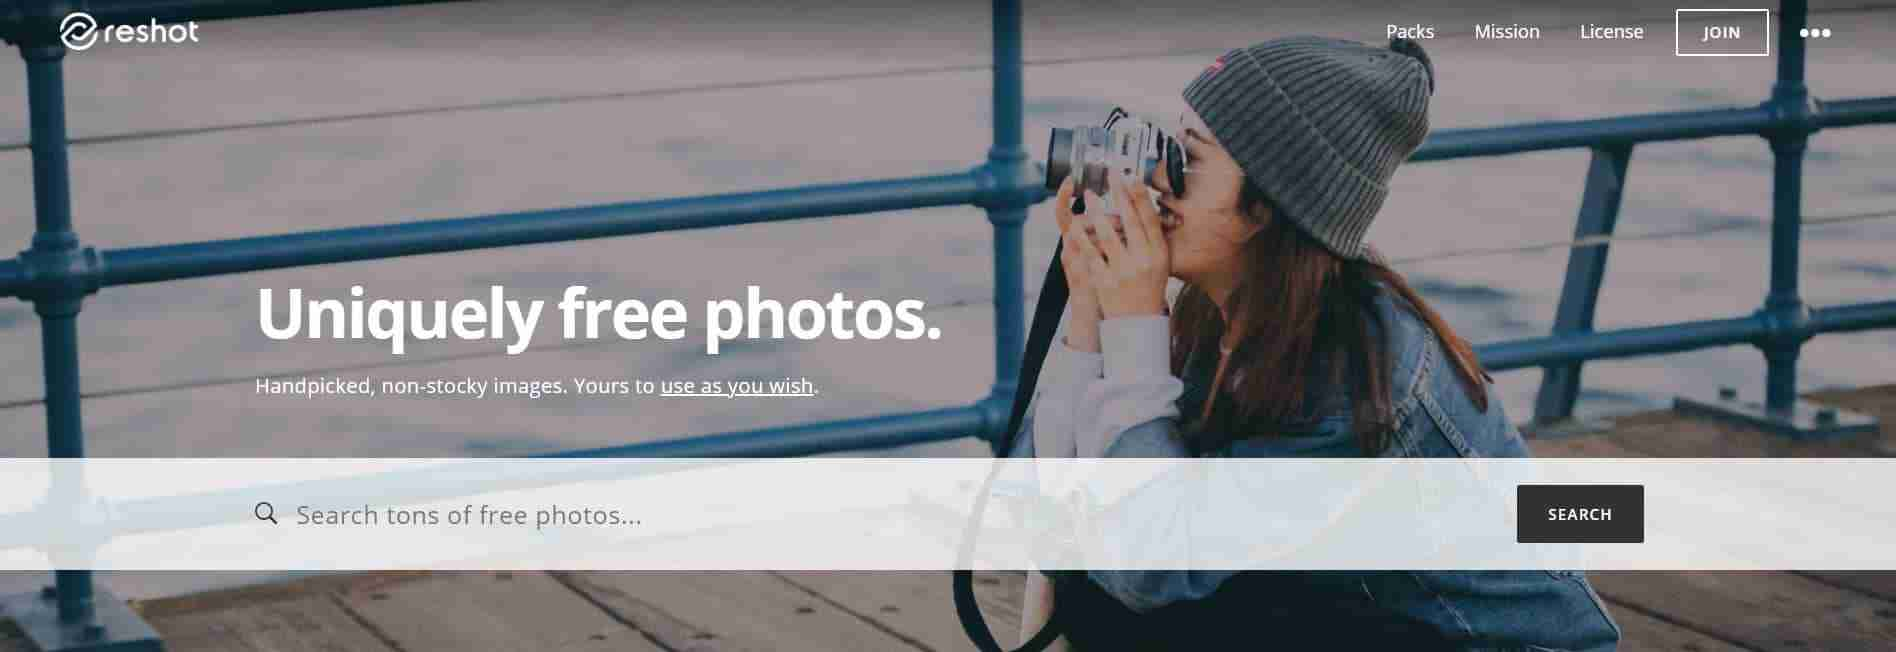 Reshot: Uniquely Free Photos